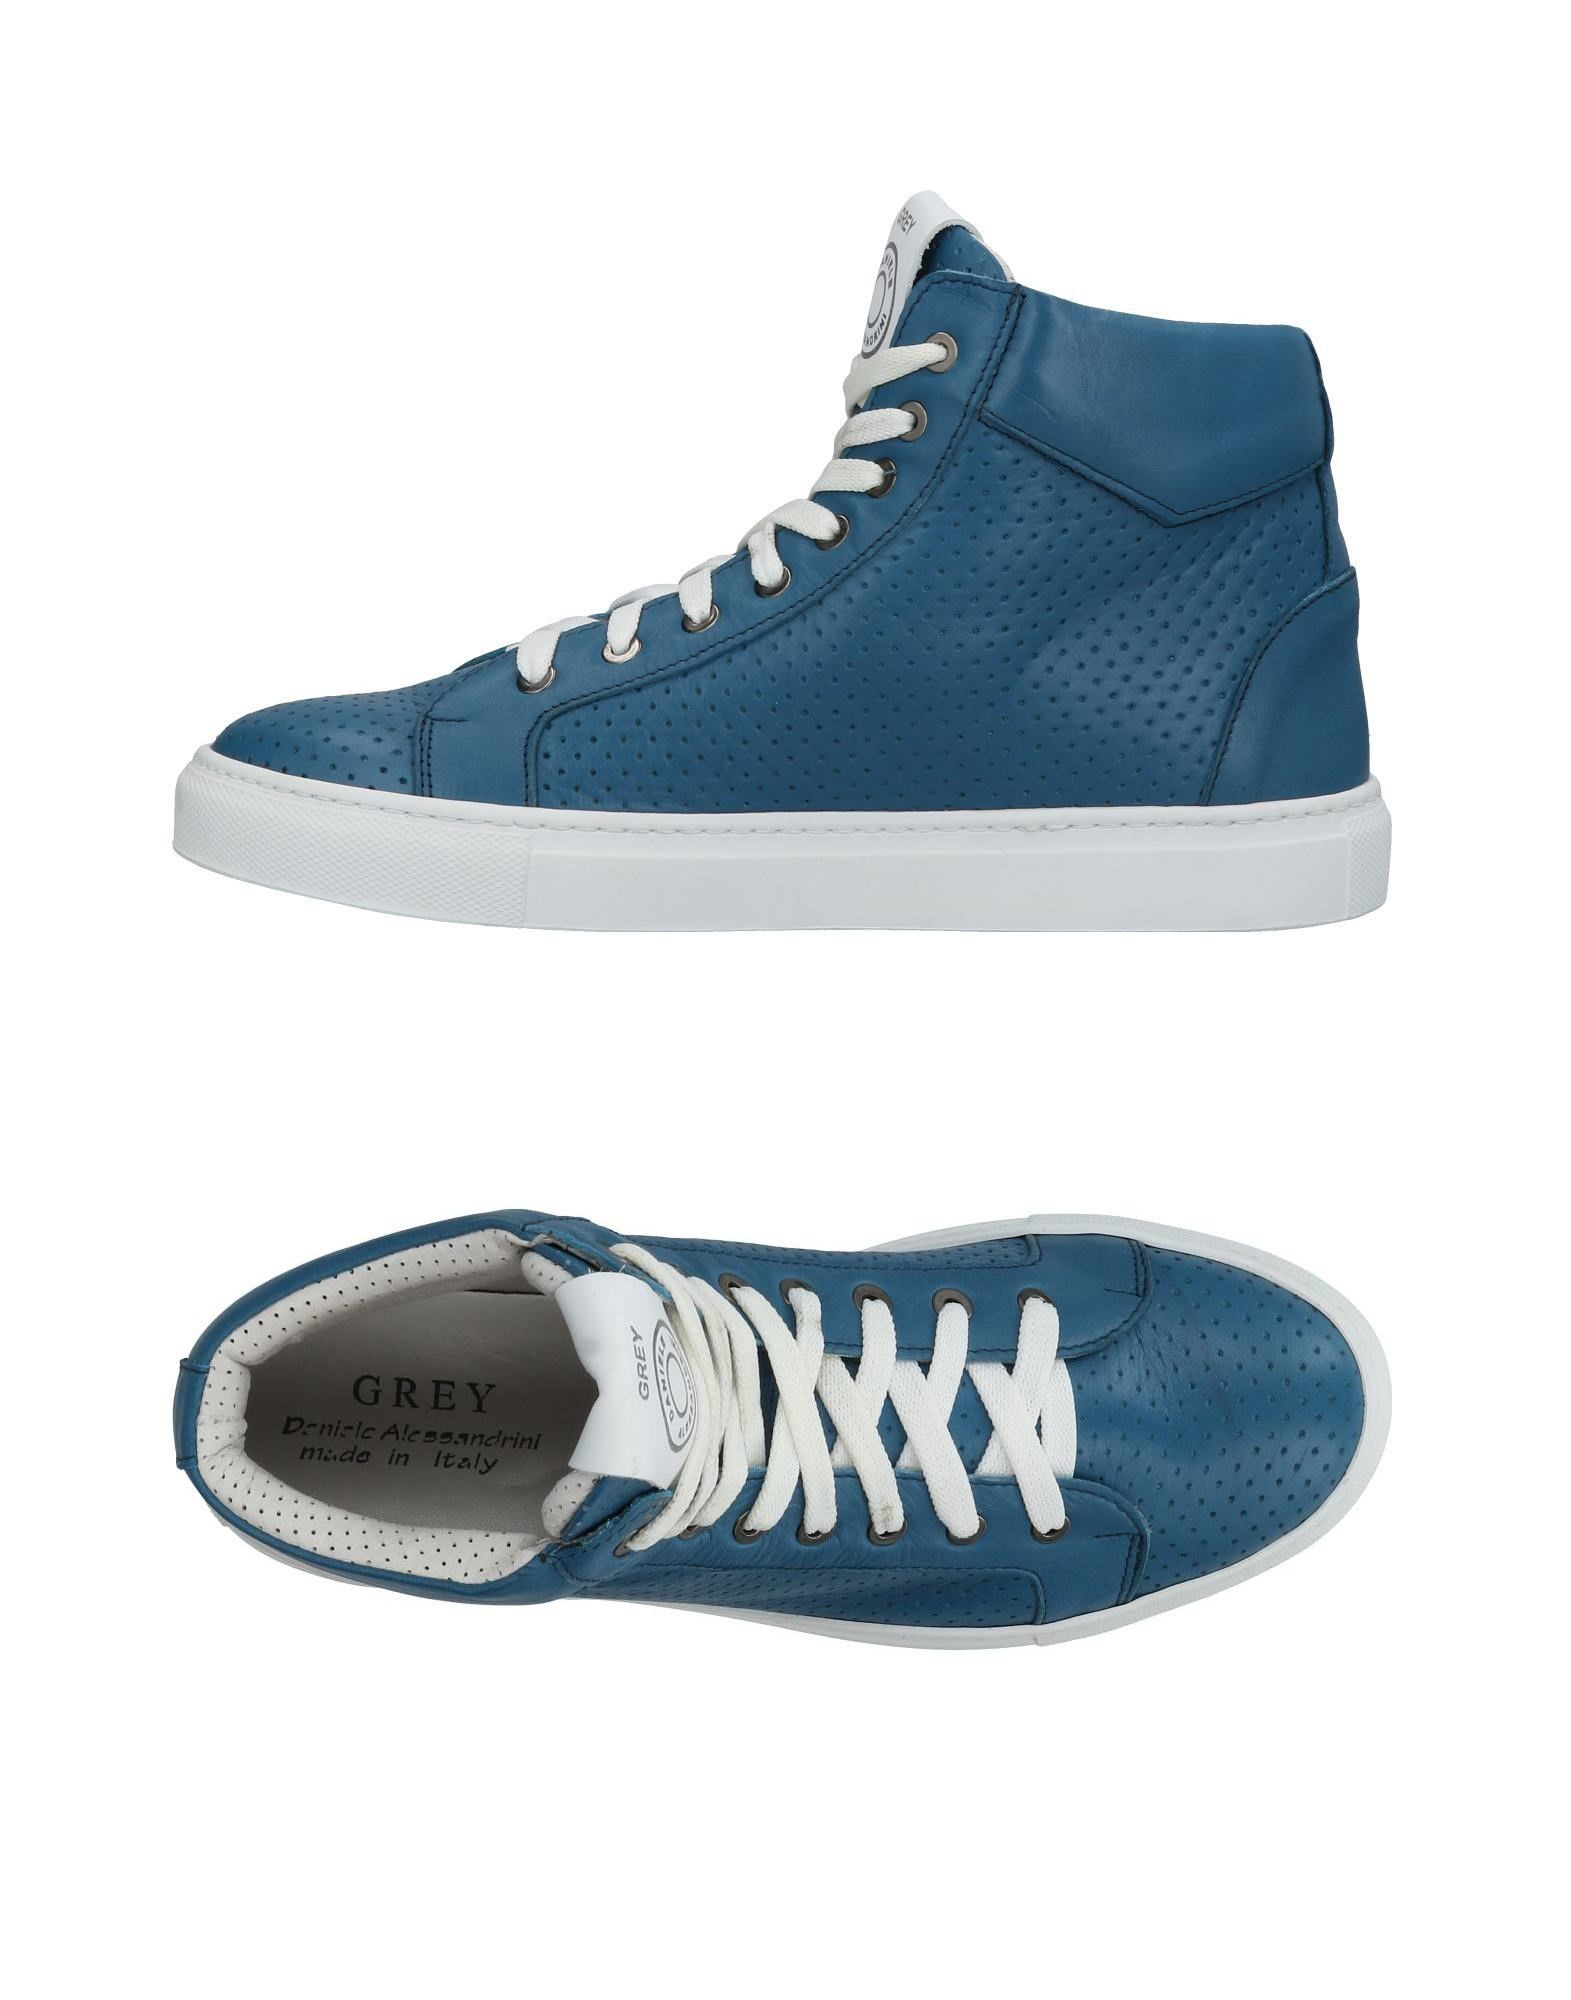 Sneakers Daniele Alessandrini Uomo - 11130246UP